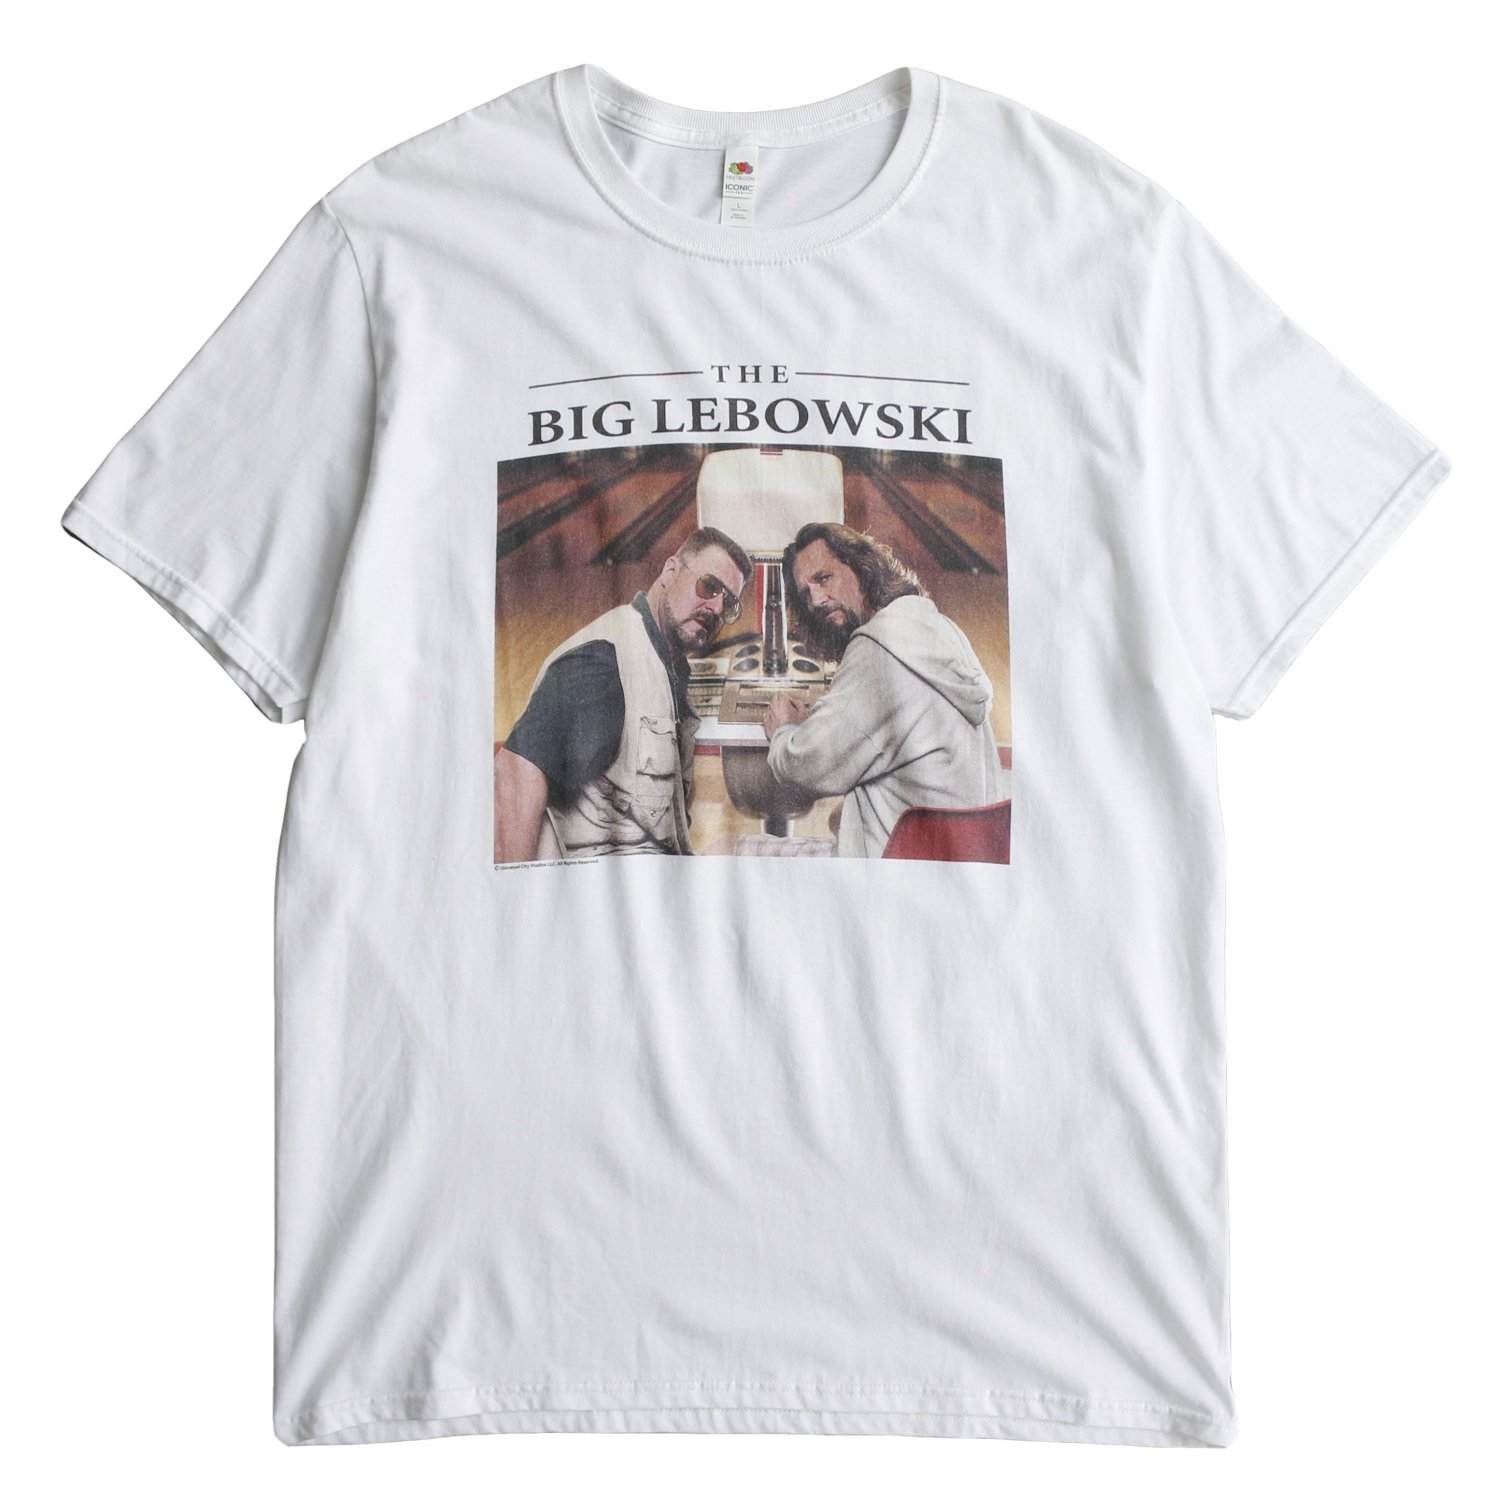 <img class='new_mark_img1' src='https://img.shop-pro.jp/img/new/icons8.gif' style='border:none;display:inline;margin:0px;padding:0px;width:auto;' />Movie Tee / S/S TEE THE BIG LEBOWSKI